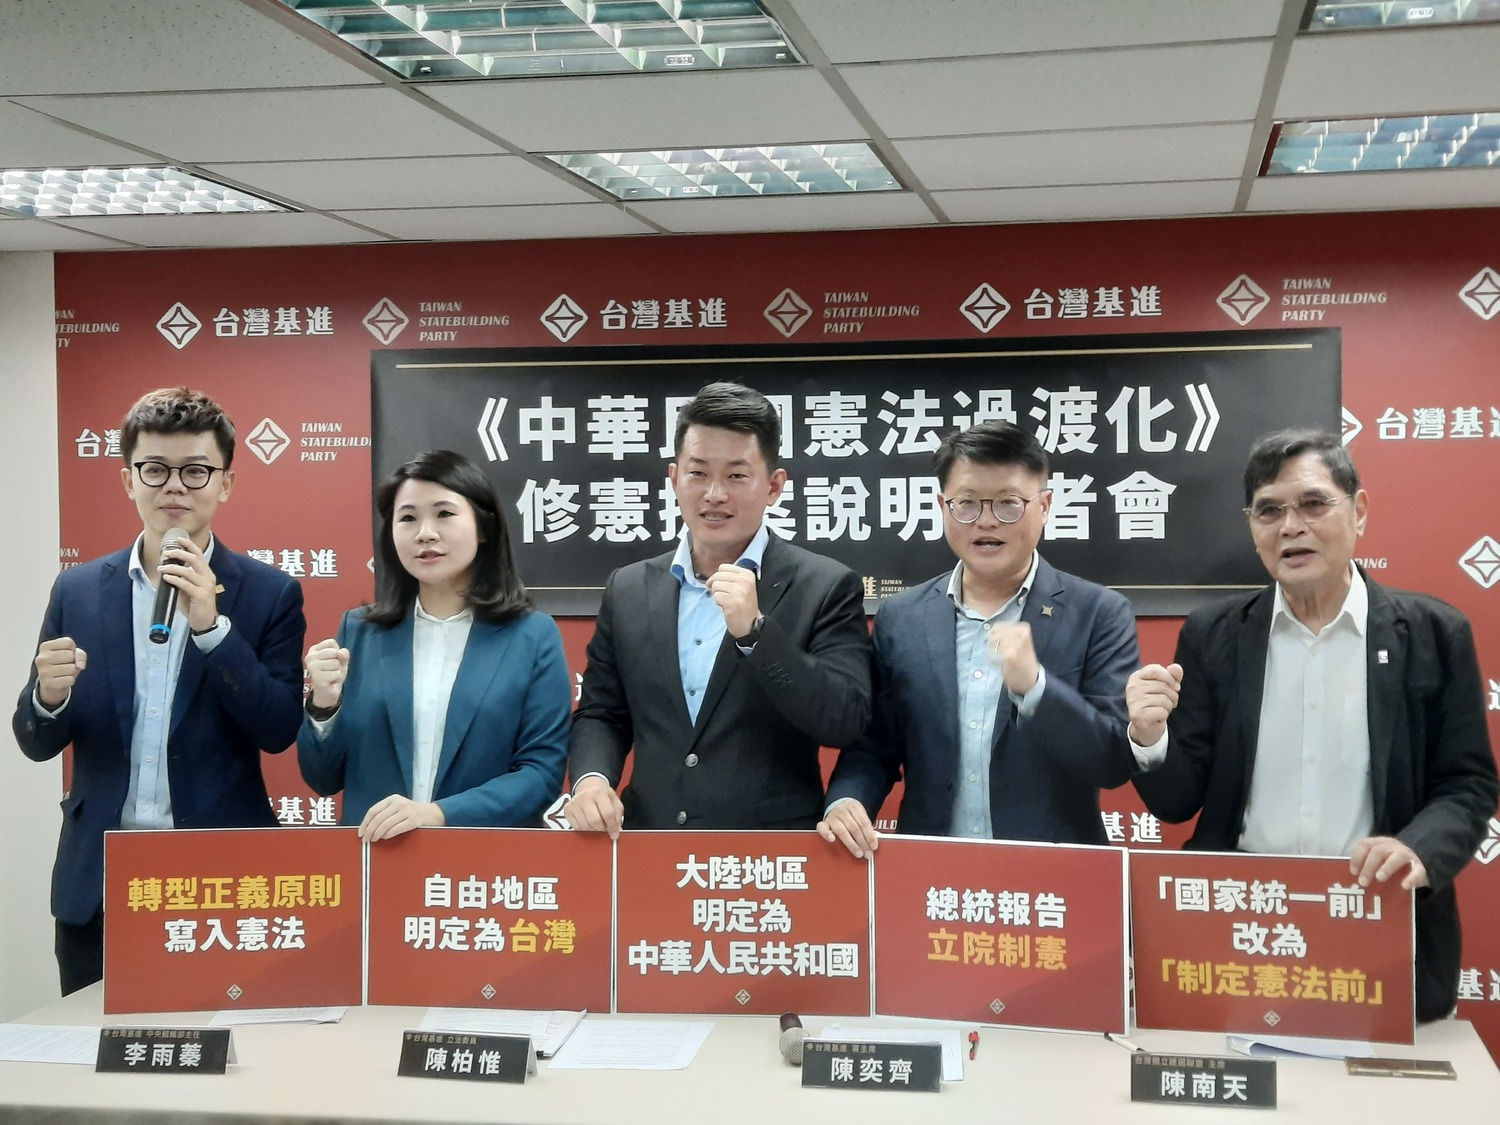 Taiwan Kijin held a press conference to explain the proposed constitutional amendment to the